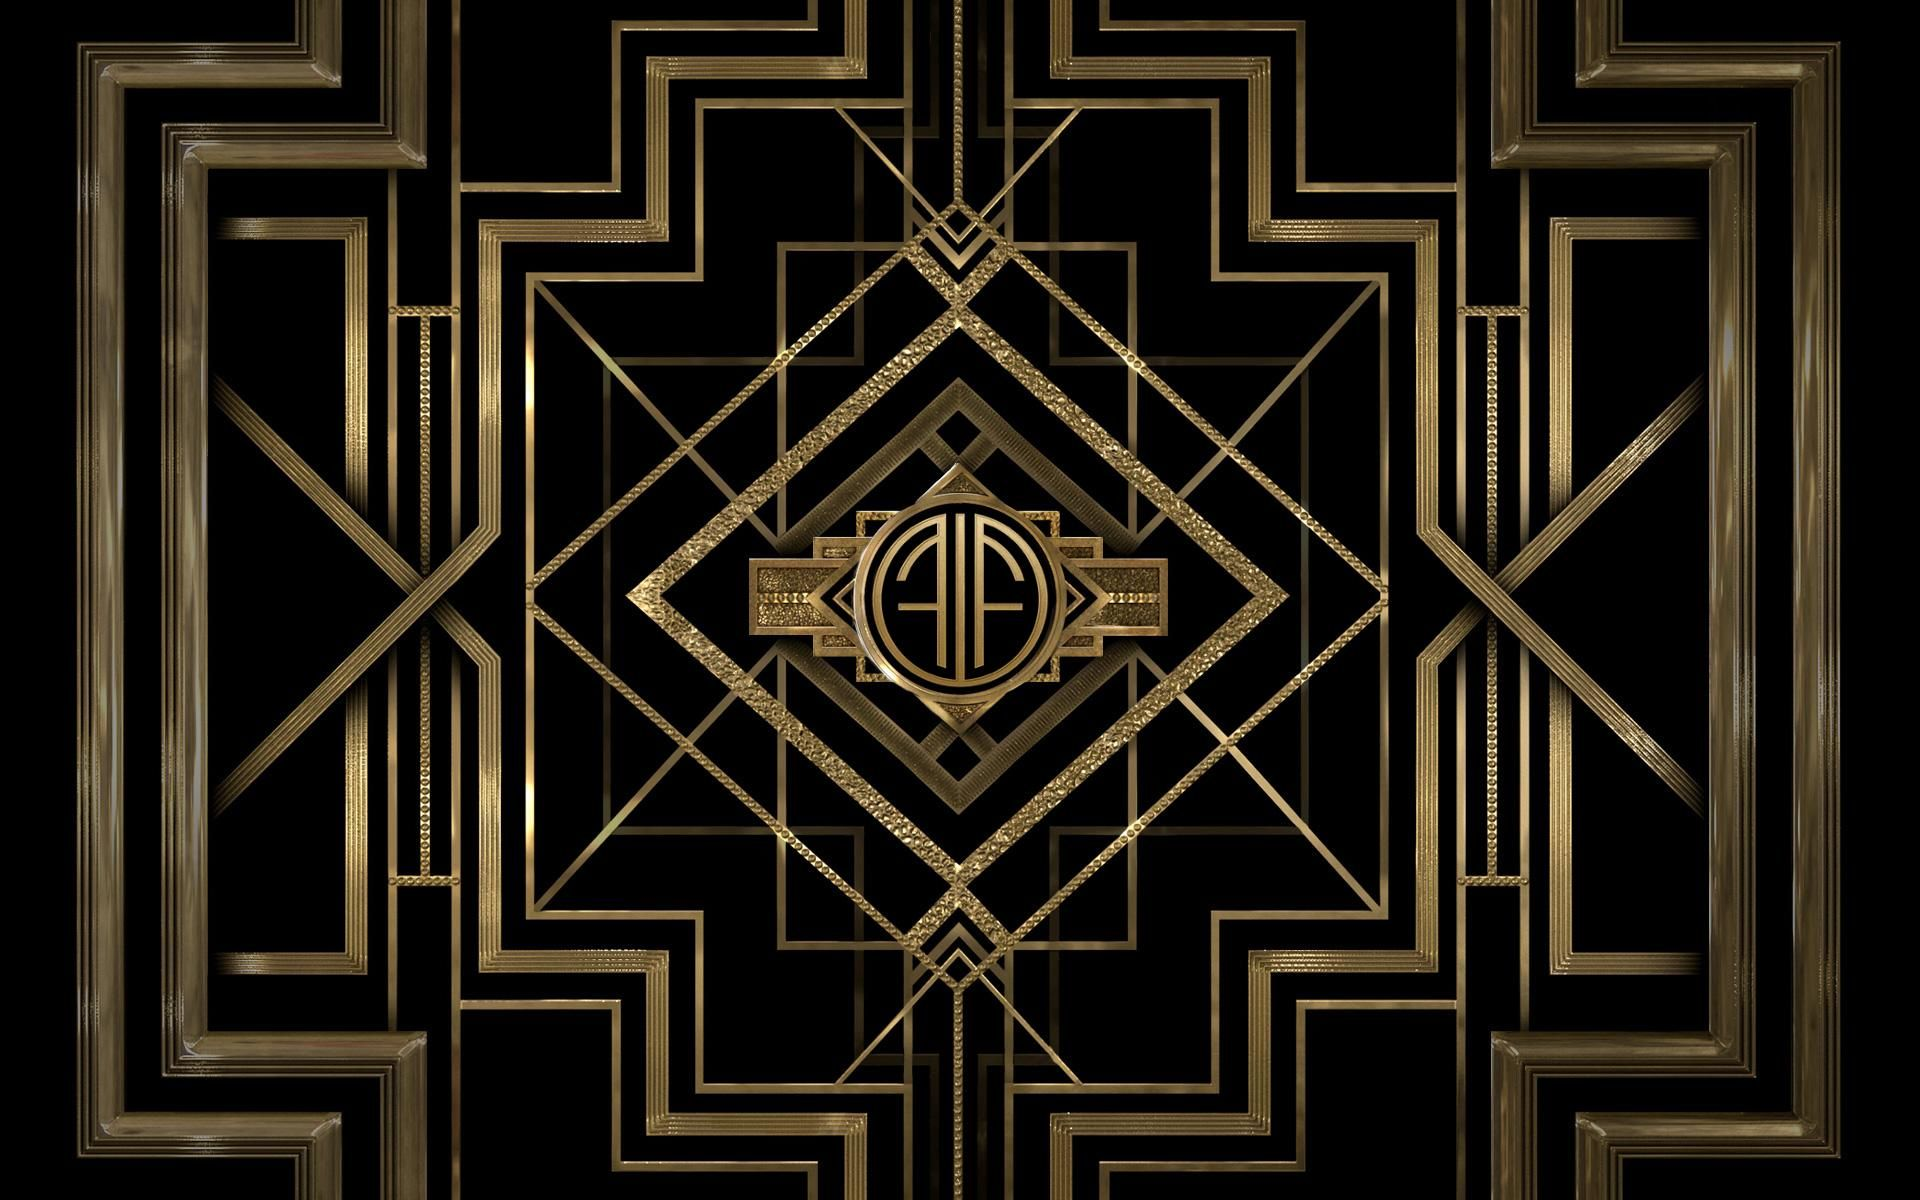 Customize Your Own The Great Gatsby Wallpaper At Appswarnerbros Greatgatsby Monogramcreator Us